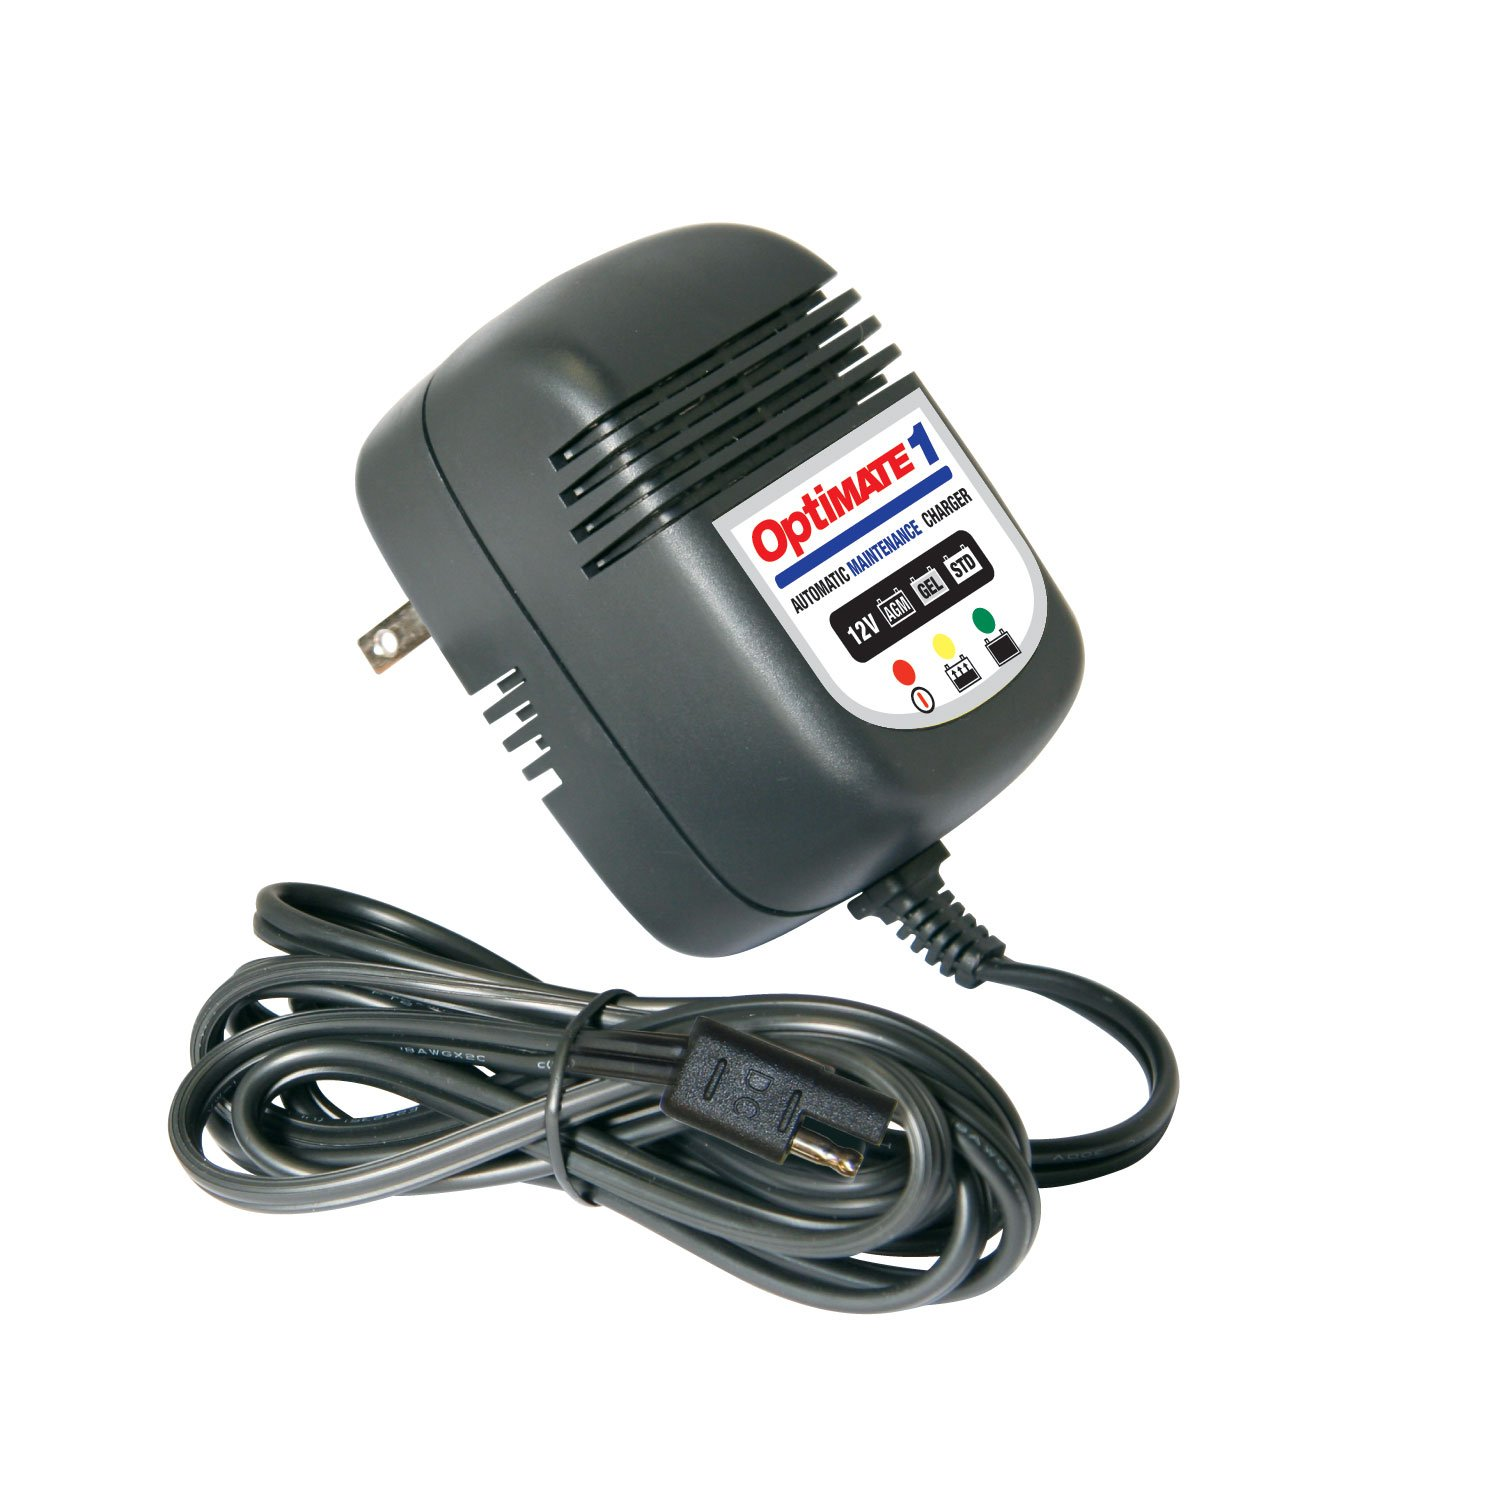 3-Step 12V 0.9A Battery Charger-maintainer Optimate 1 STD TM-85